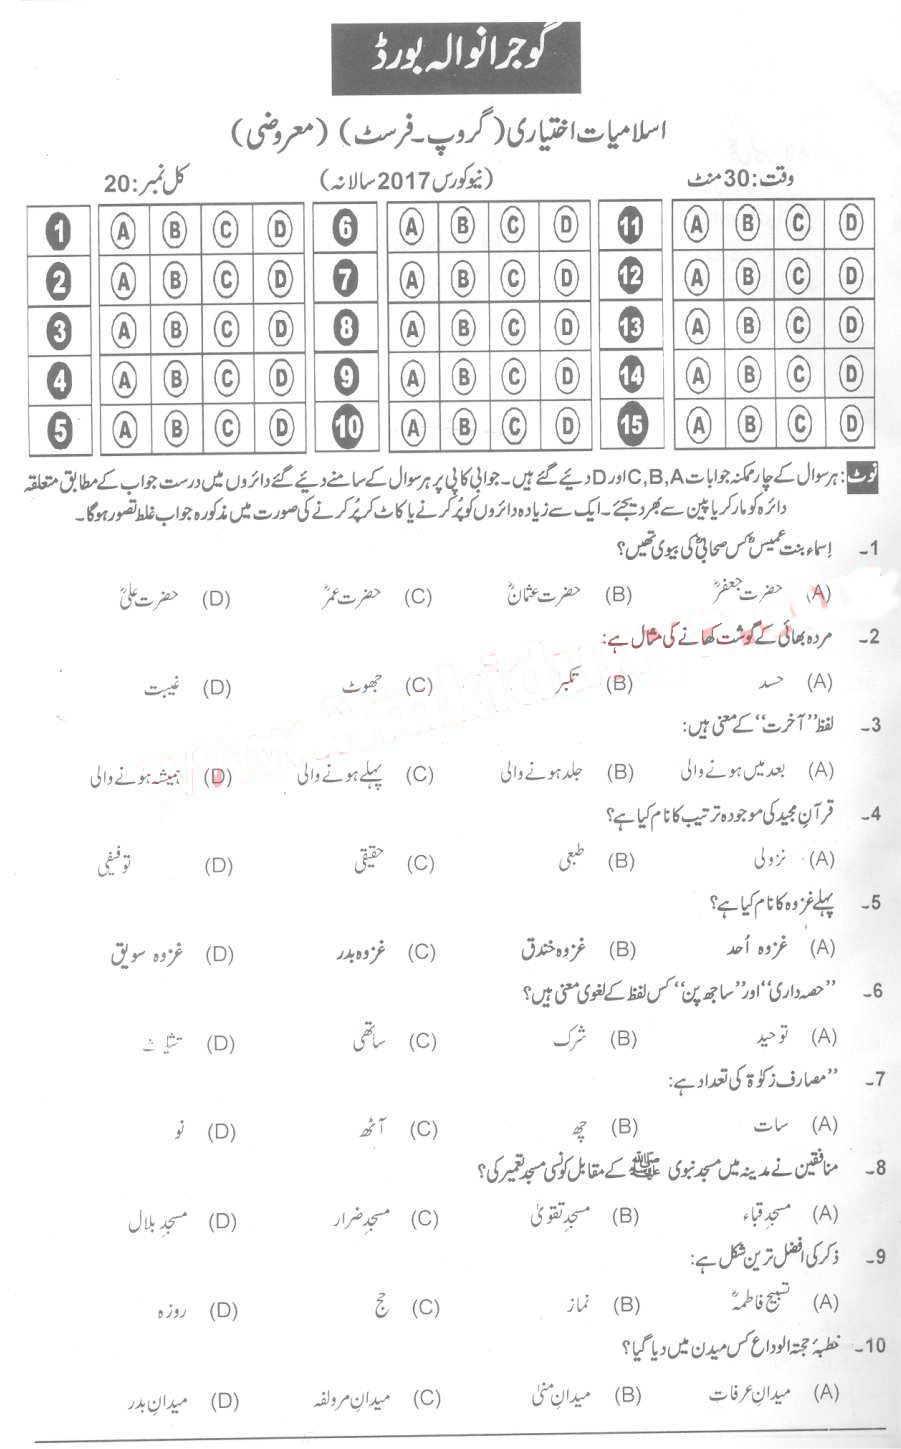 BISE Gujranwala Board Past Papers 2019 Inter Part 1 2, FA, HSSC, FSC